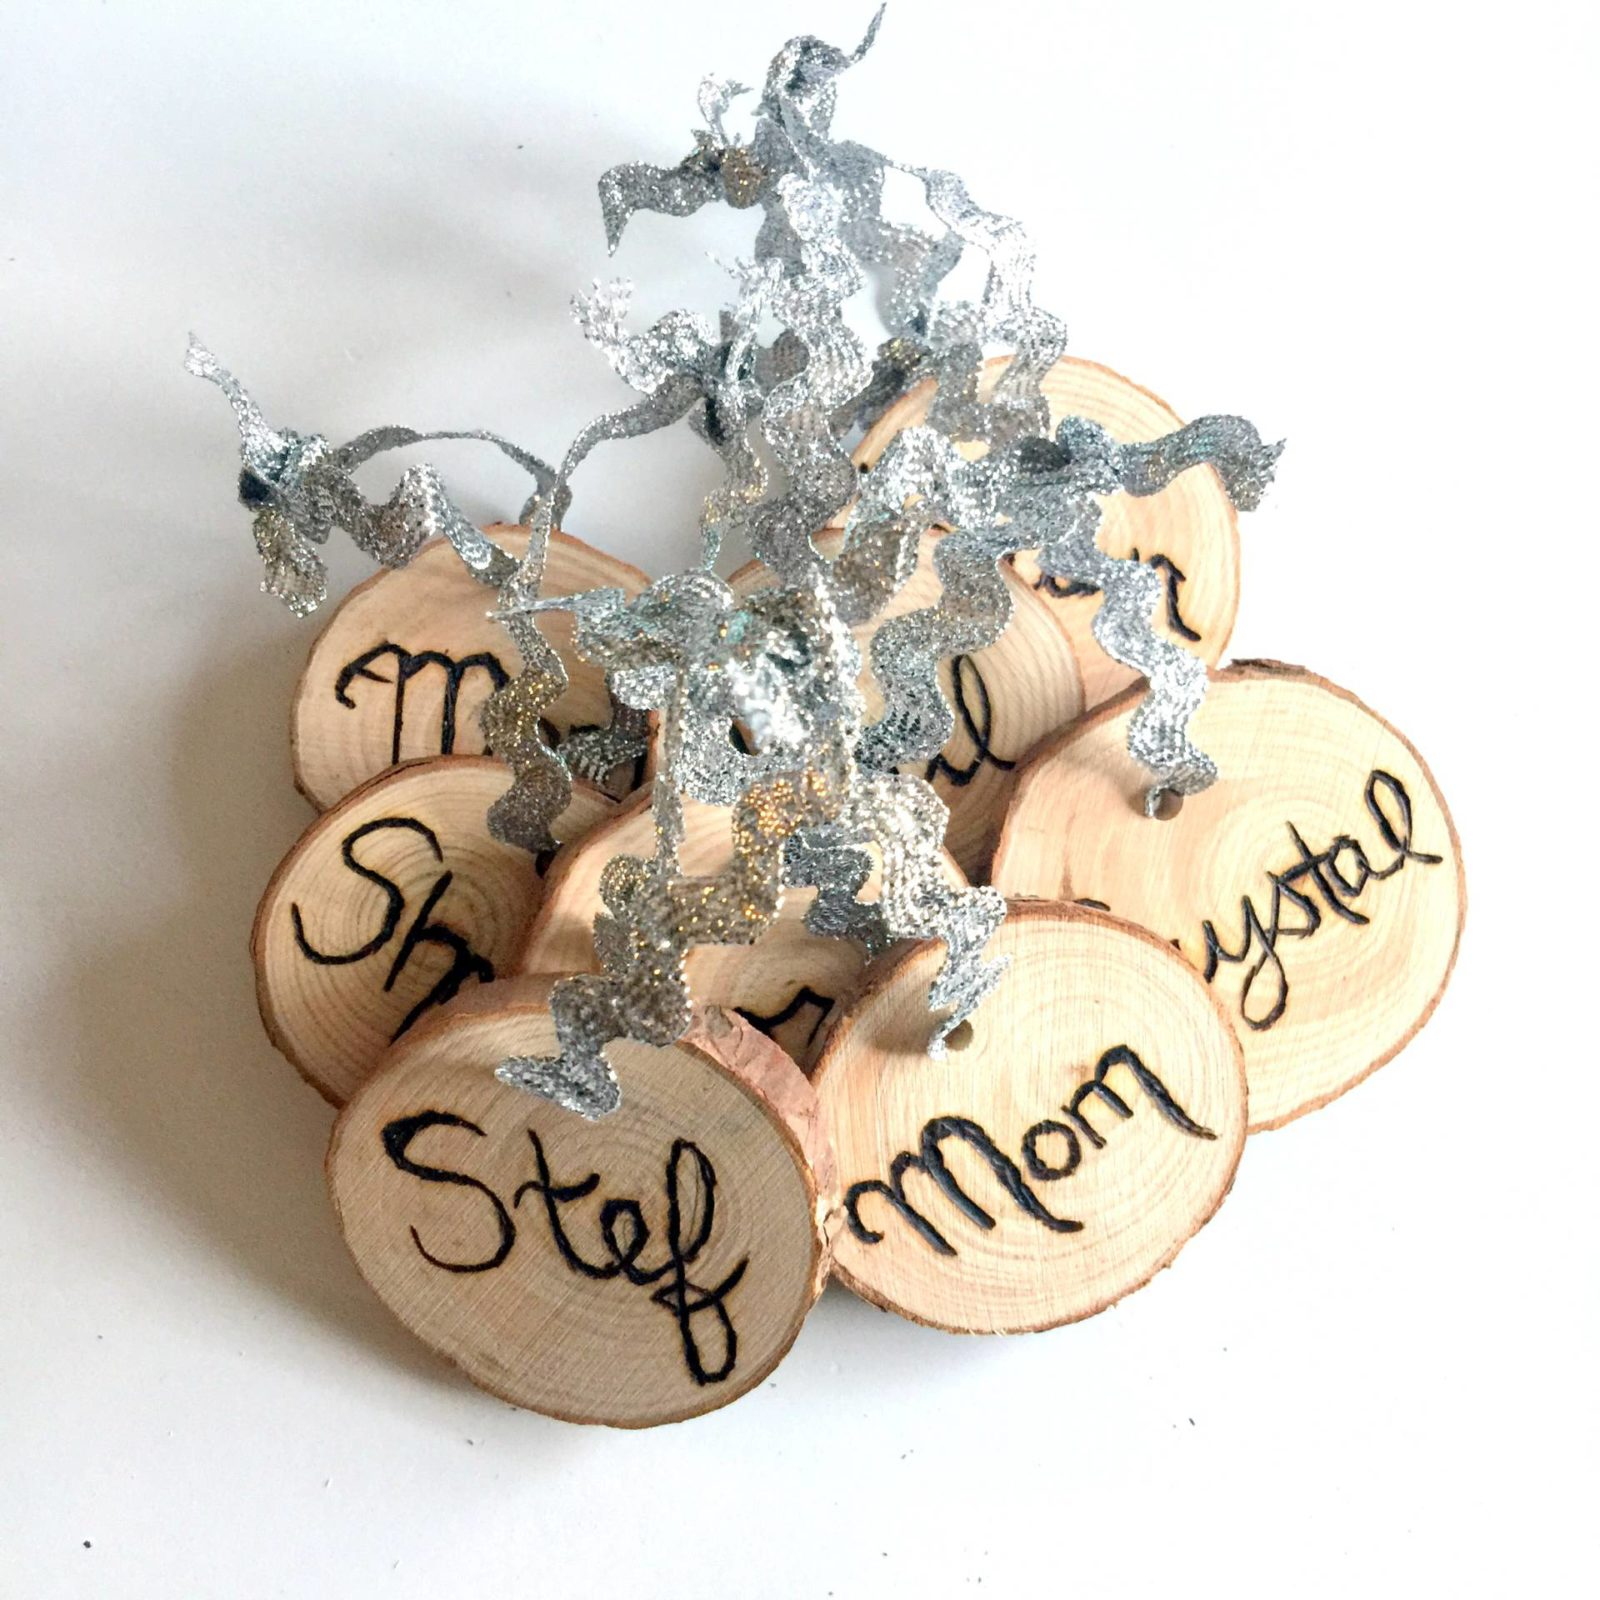 12 12 gift tags-16